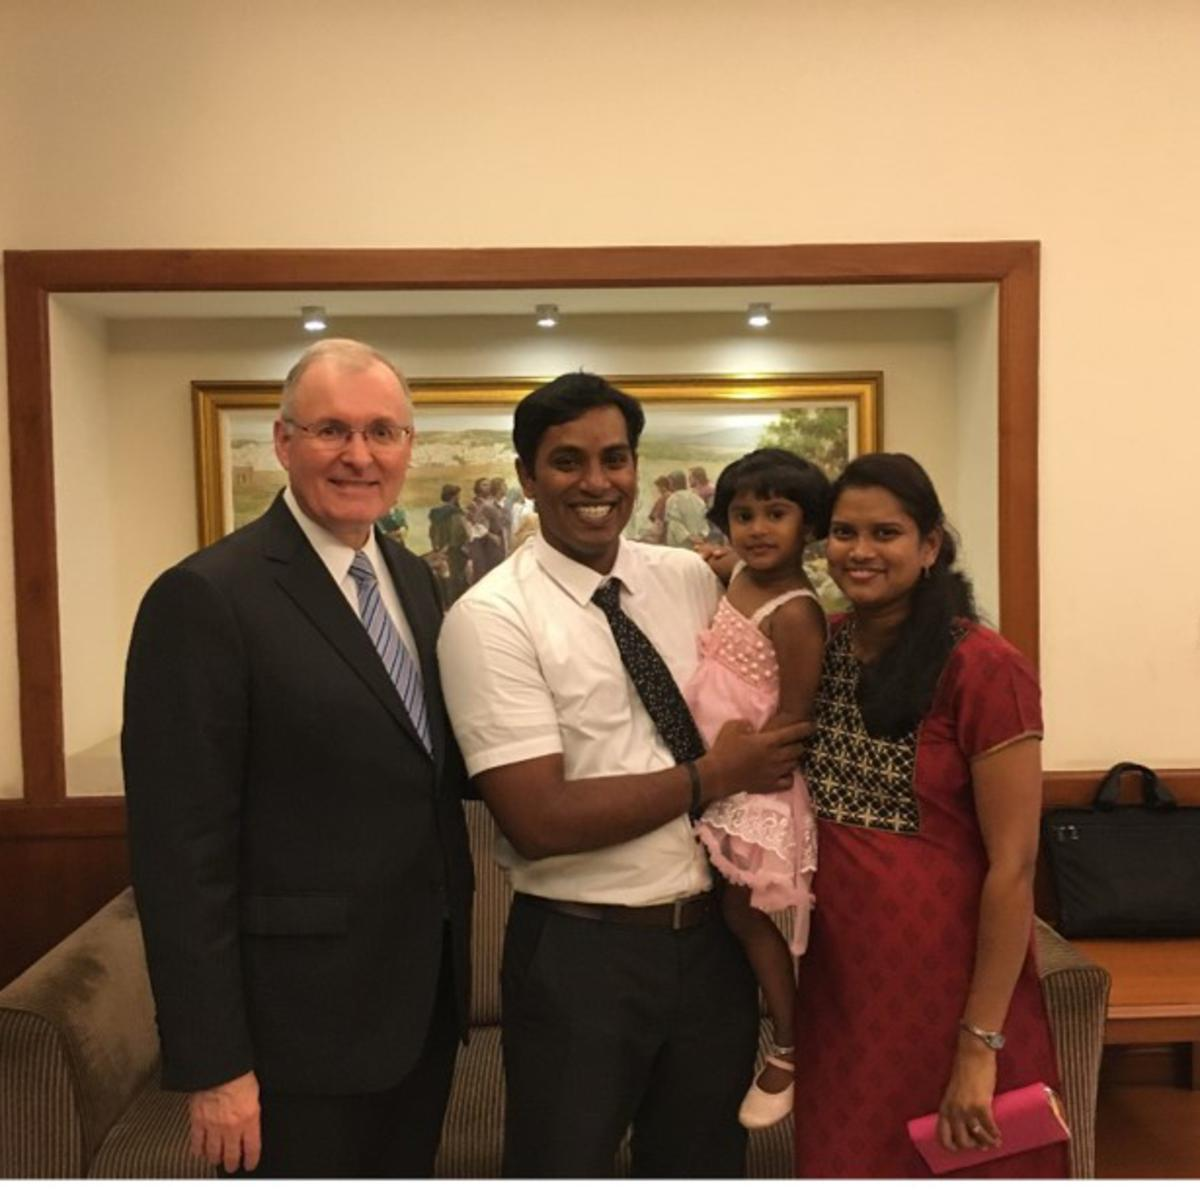 Elder Funk is grateful to see his former missionaries from India now sealed in the temple and raising their children in the gospel.